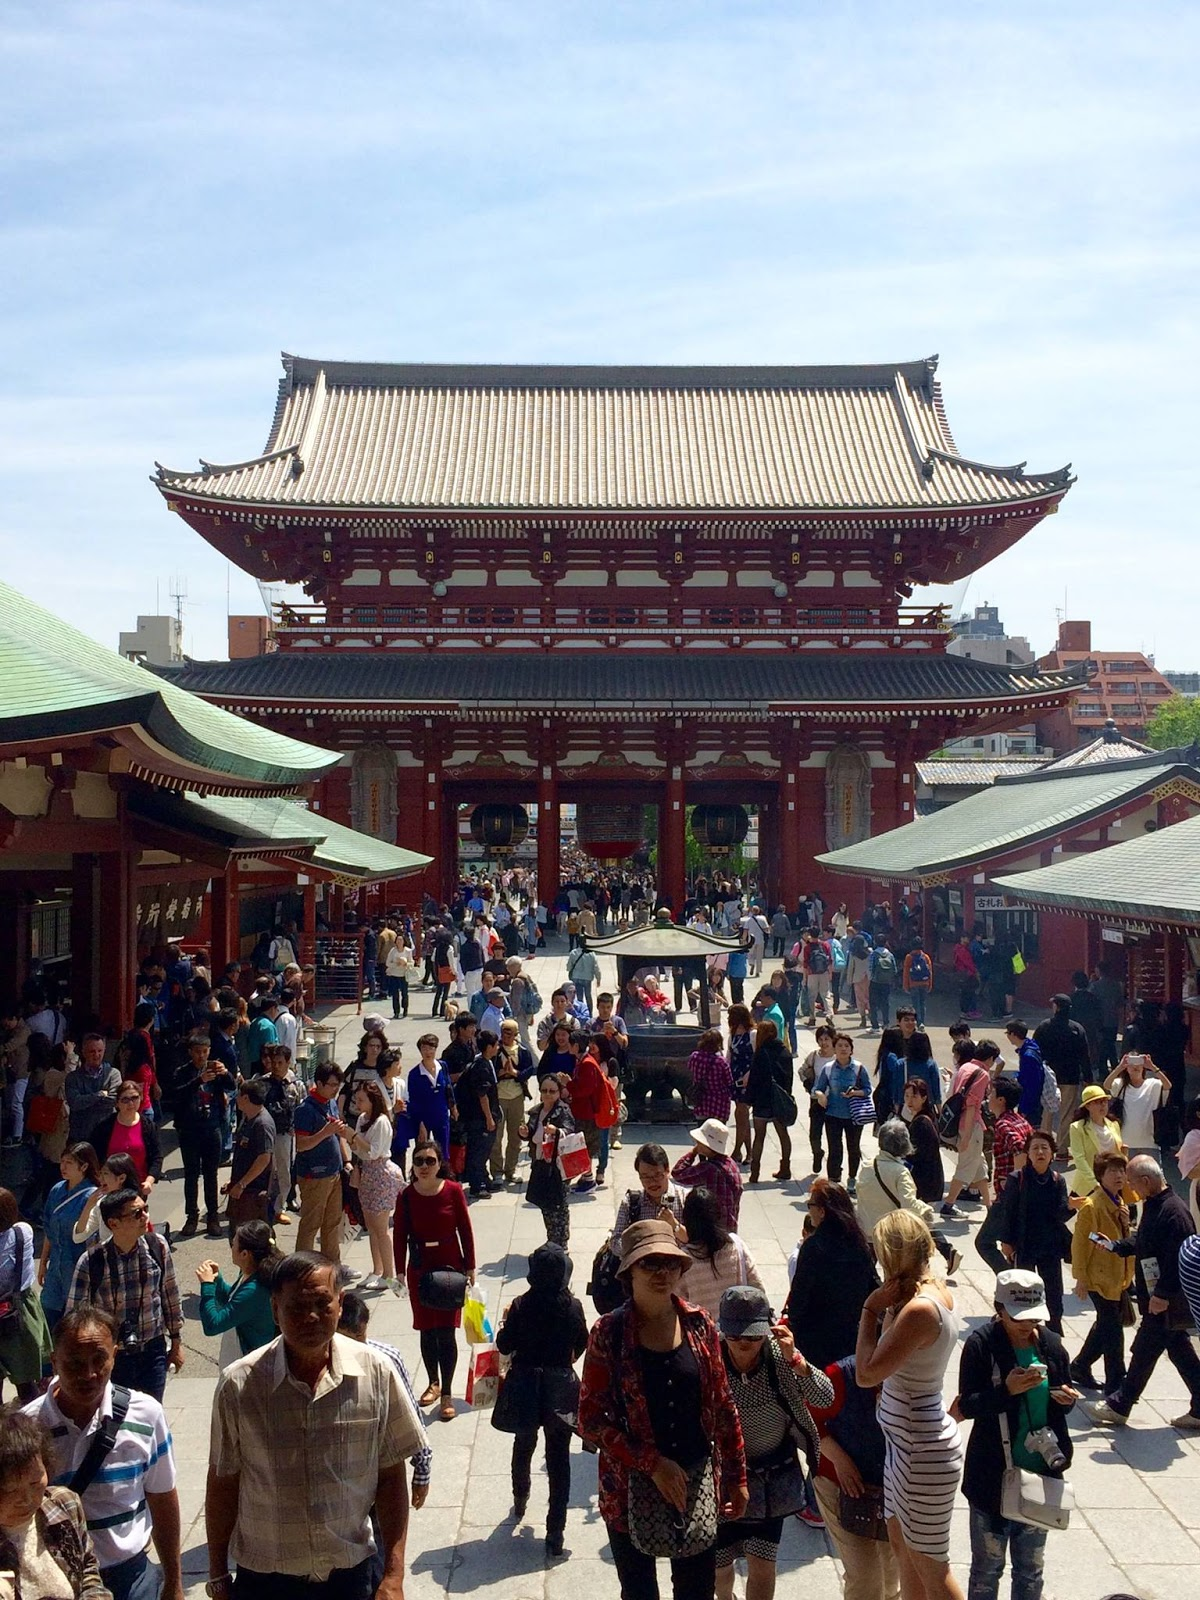 Crowds roam the grounds of Senso-ji temple in Asakusa, Tokyo - April 2015